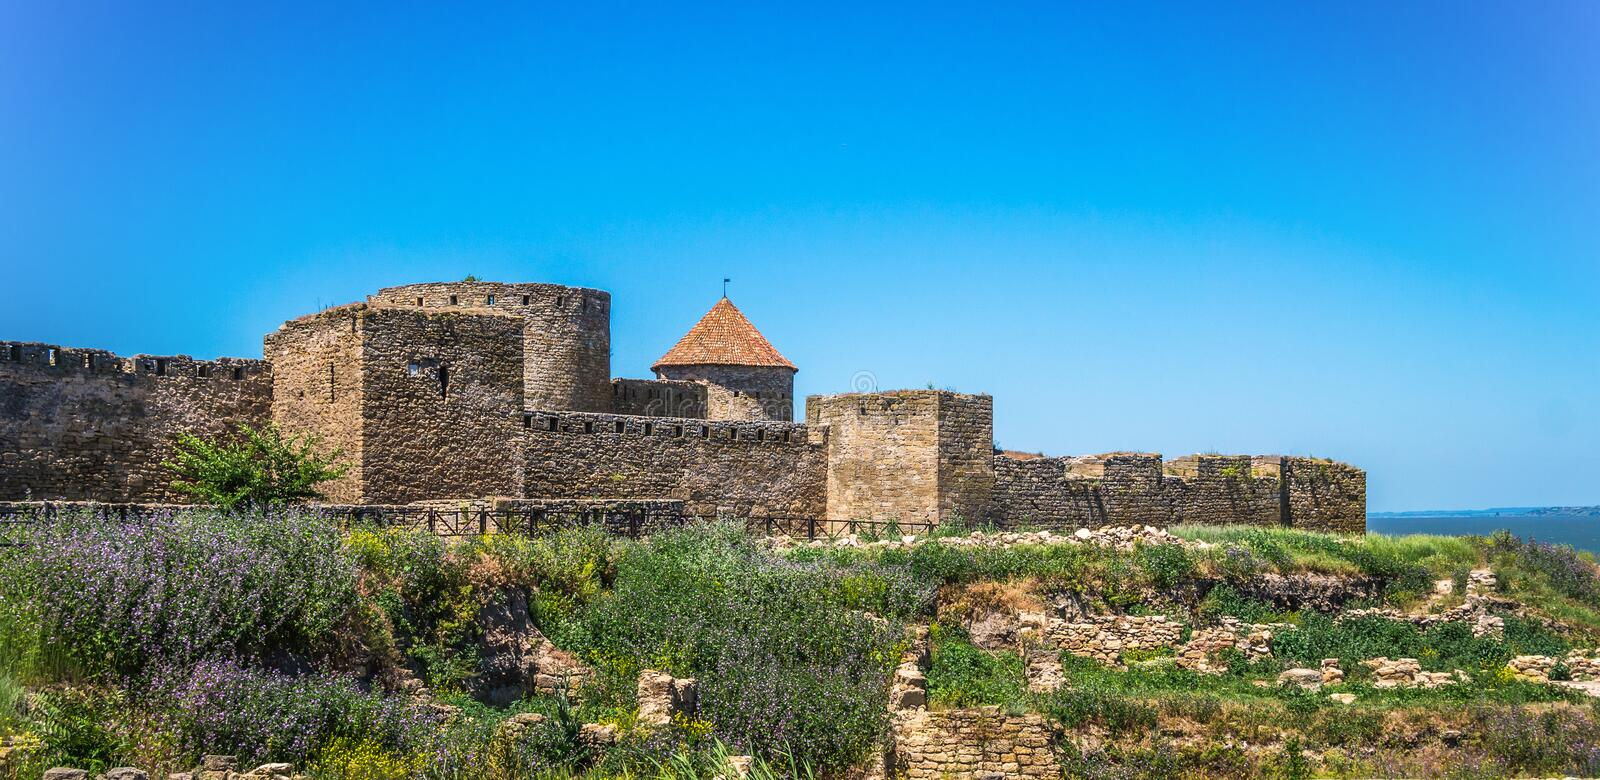 Akkerman Fortress near Odessa city in Ukraine. Akkerman Citadel in Bilhorod-Dnistrovskyi near Ukrainian Odessa city in a sunny day royalty free stock photography